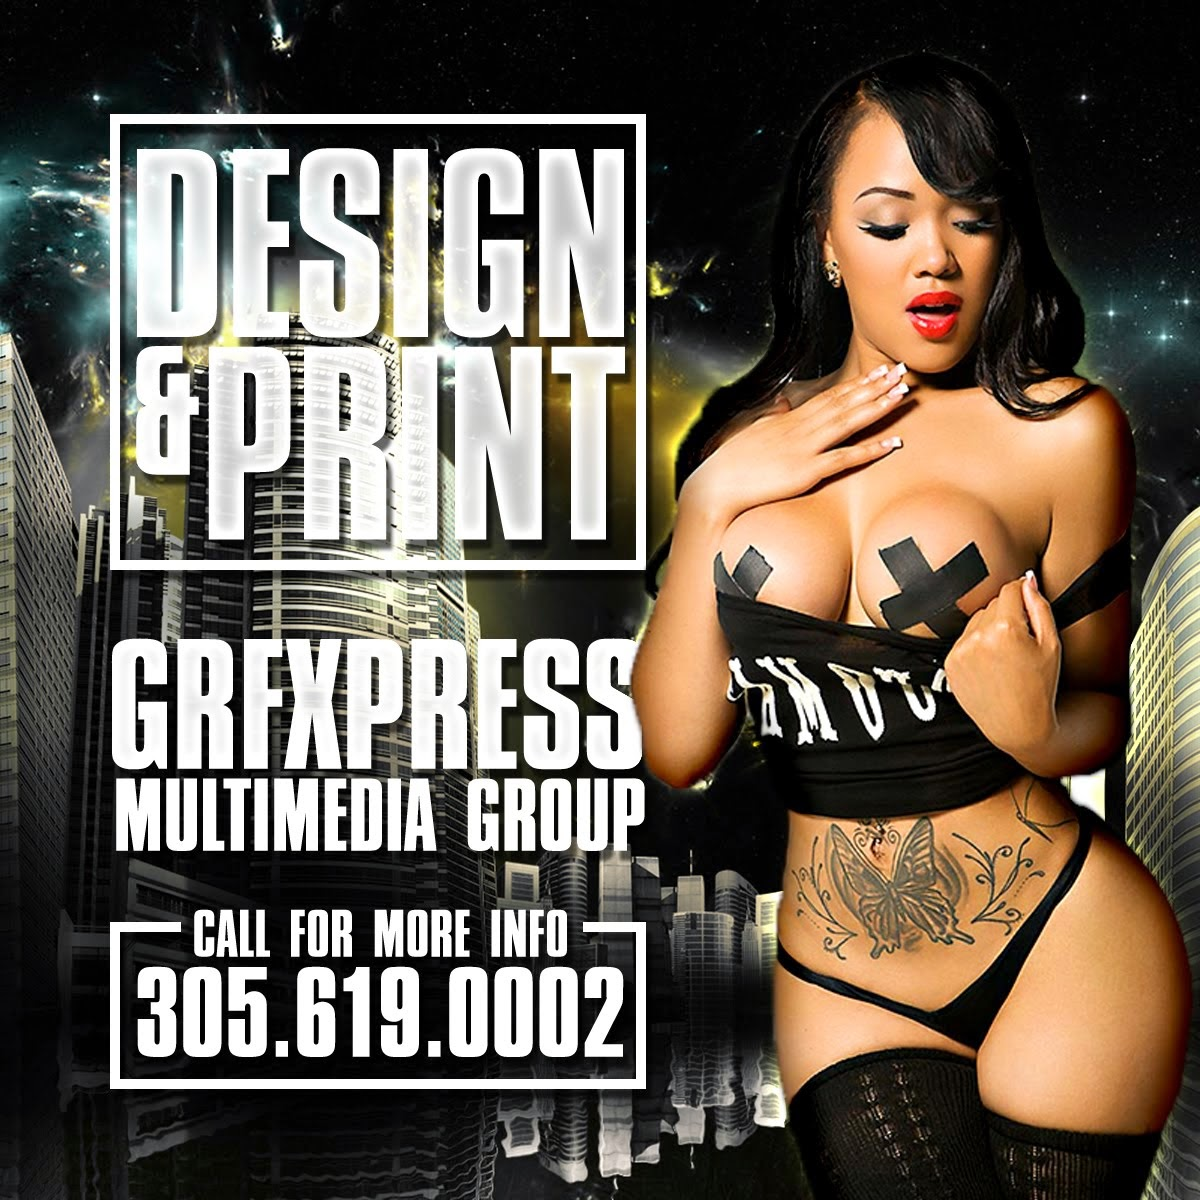 GRFXPRESS MULTIMEDIA GROUP